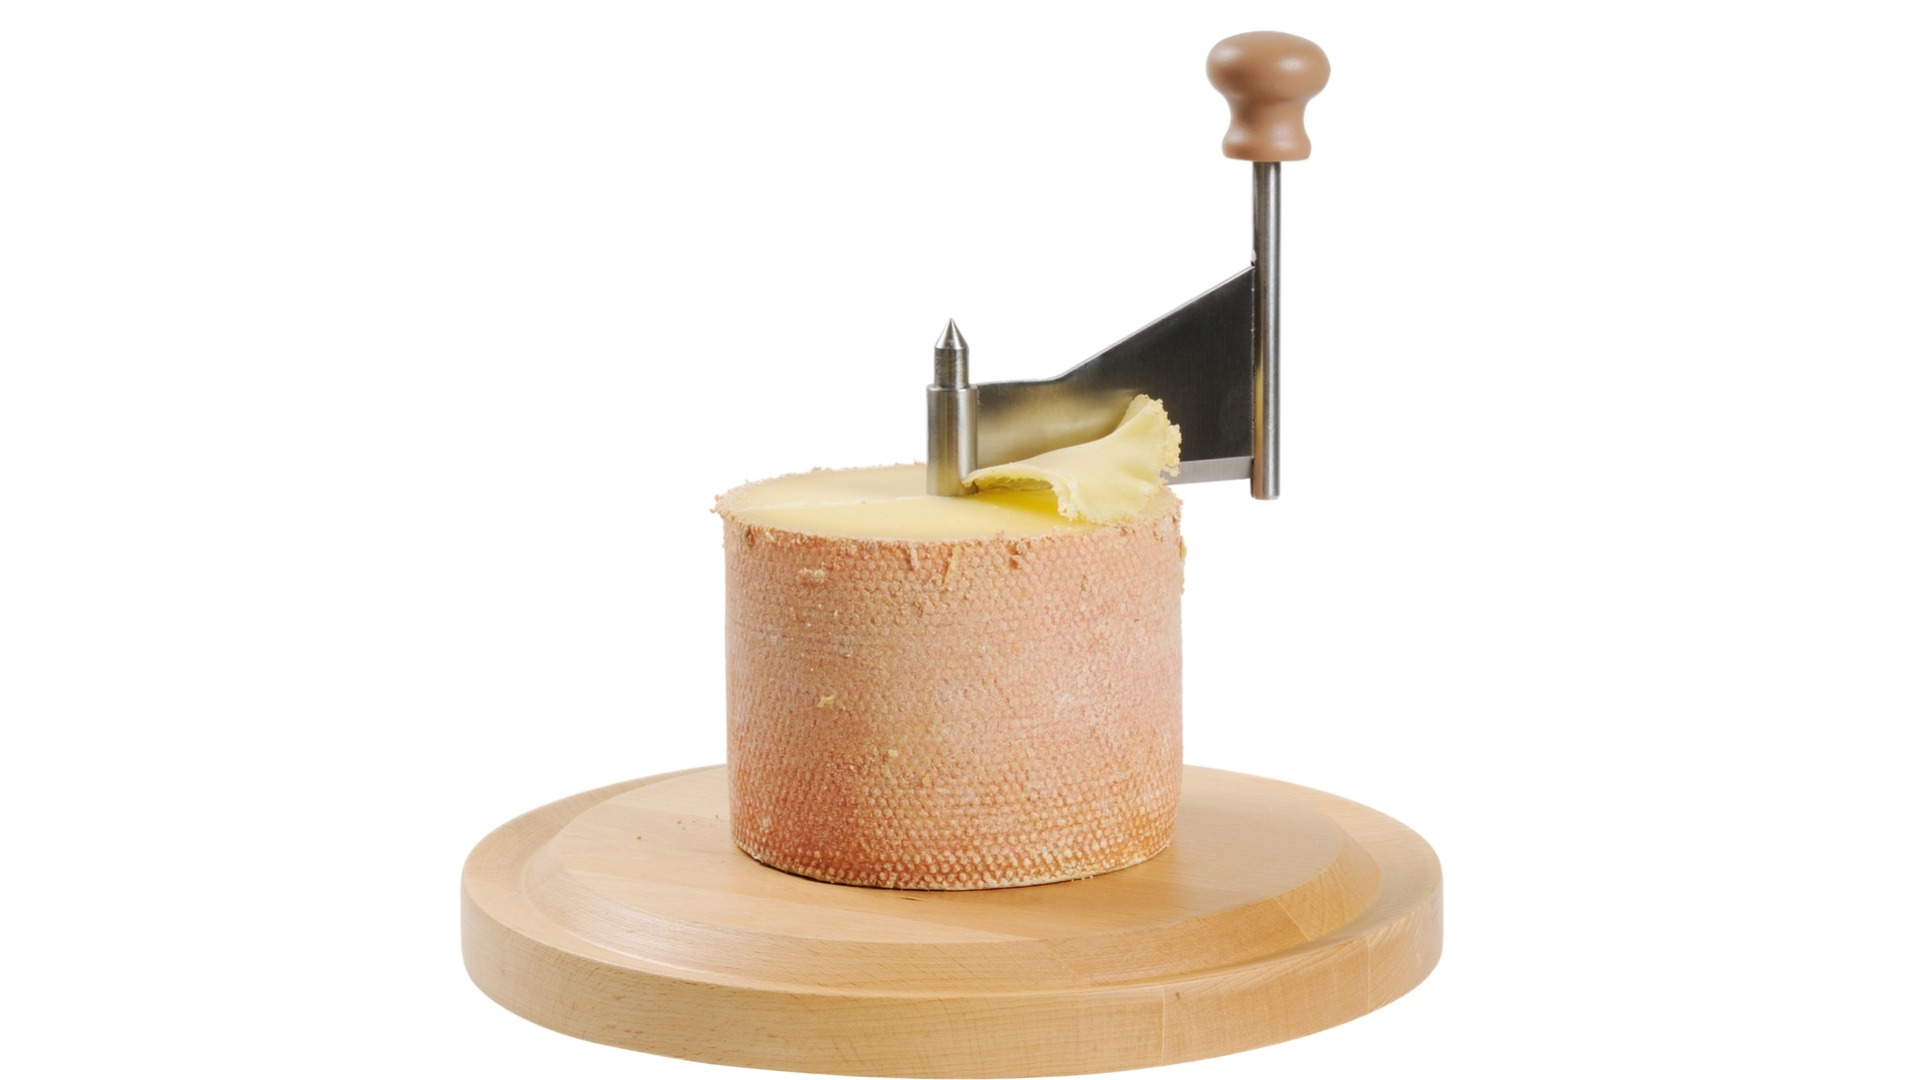 tete de moine, swiss, cheese, spin, monk head